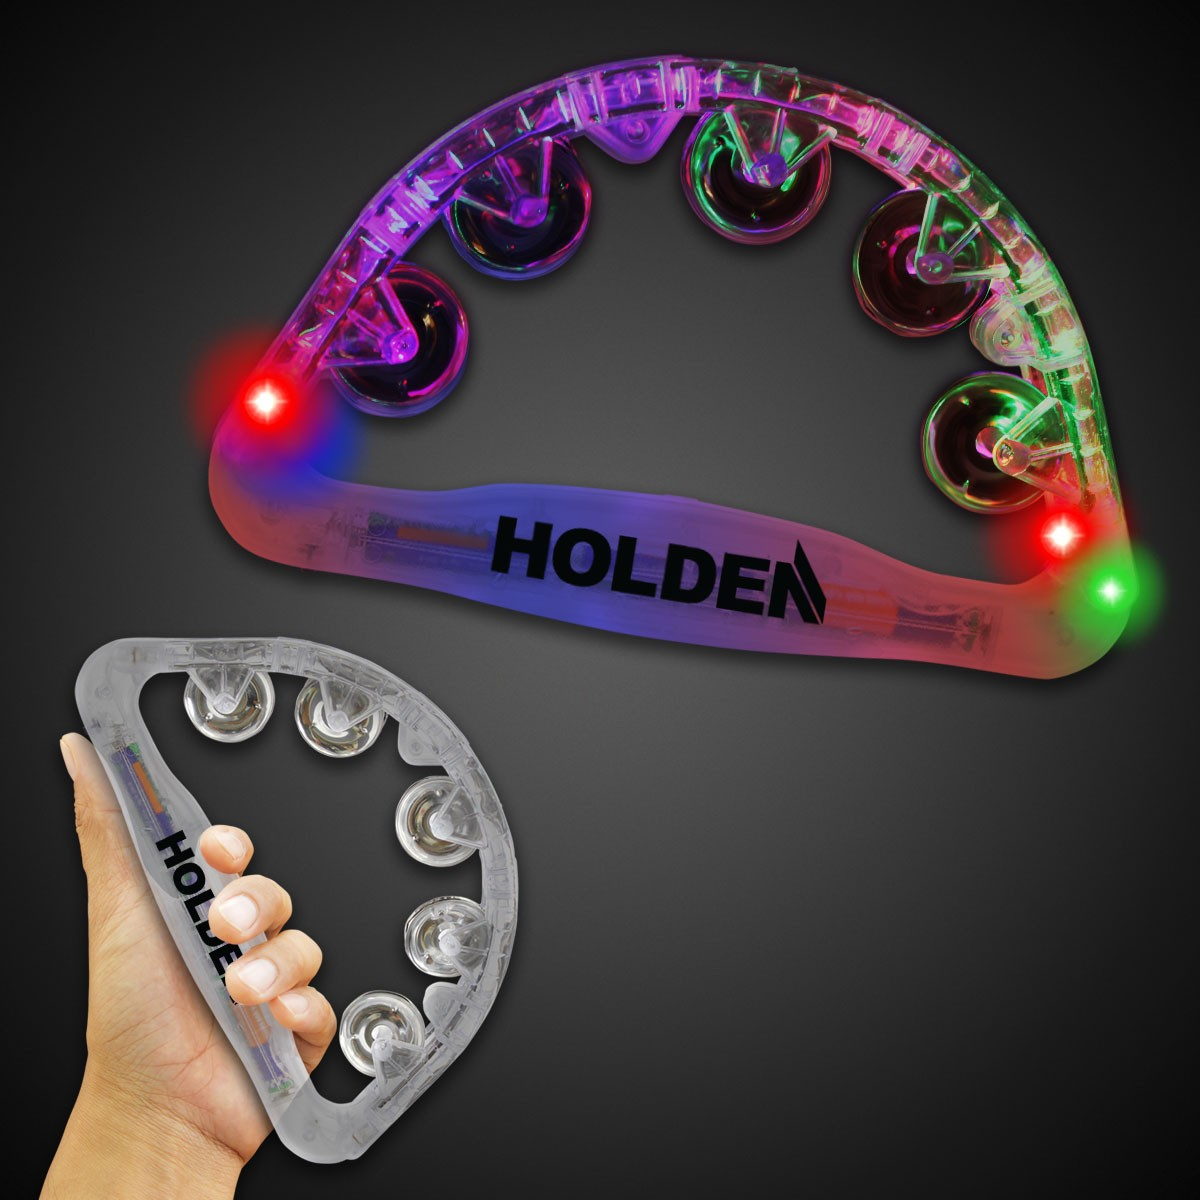 CLEAR LED LIGHT UP TAMBOURINE